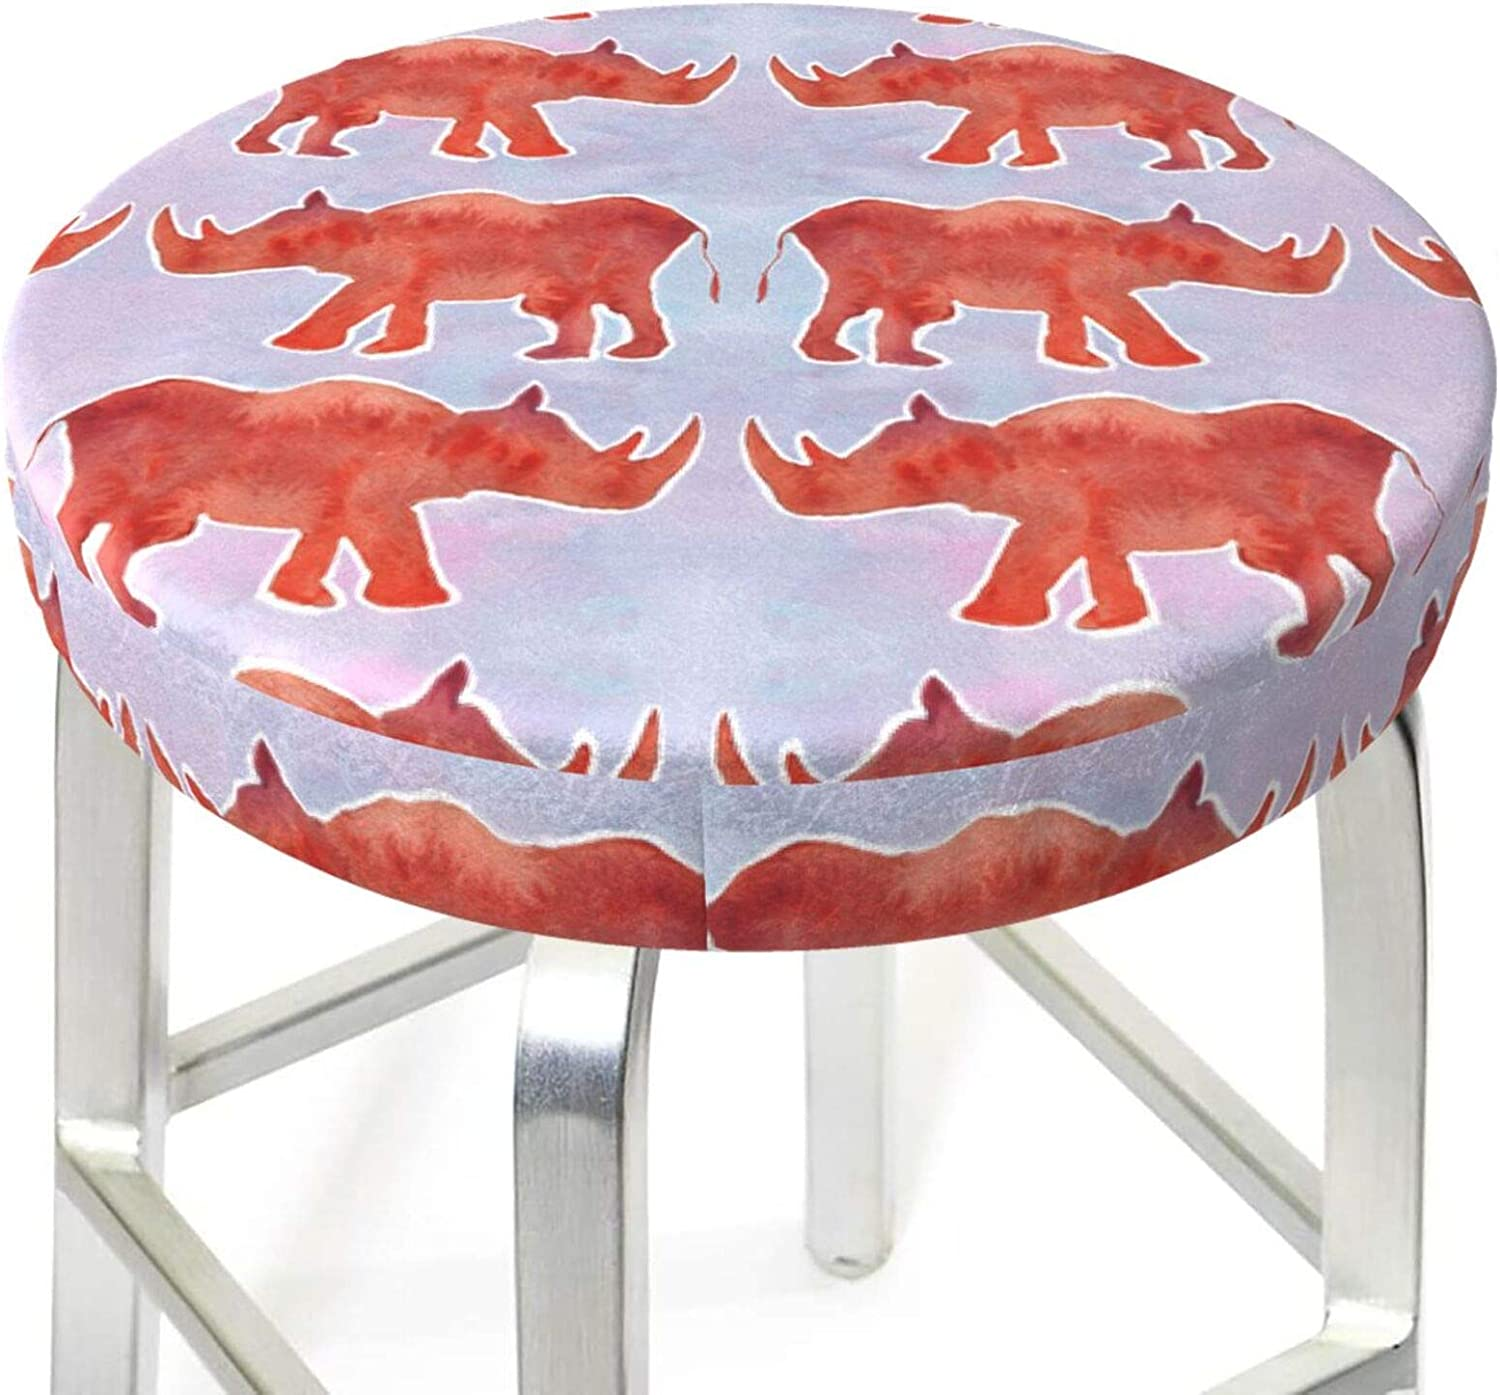 Yilad American Pride Fireworks USA Anti-Slip Barstool Seat Cushion Cover Comfortable Round Swivel Chair Protector Cushion